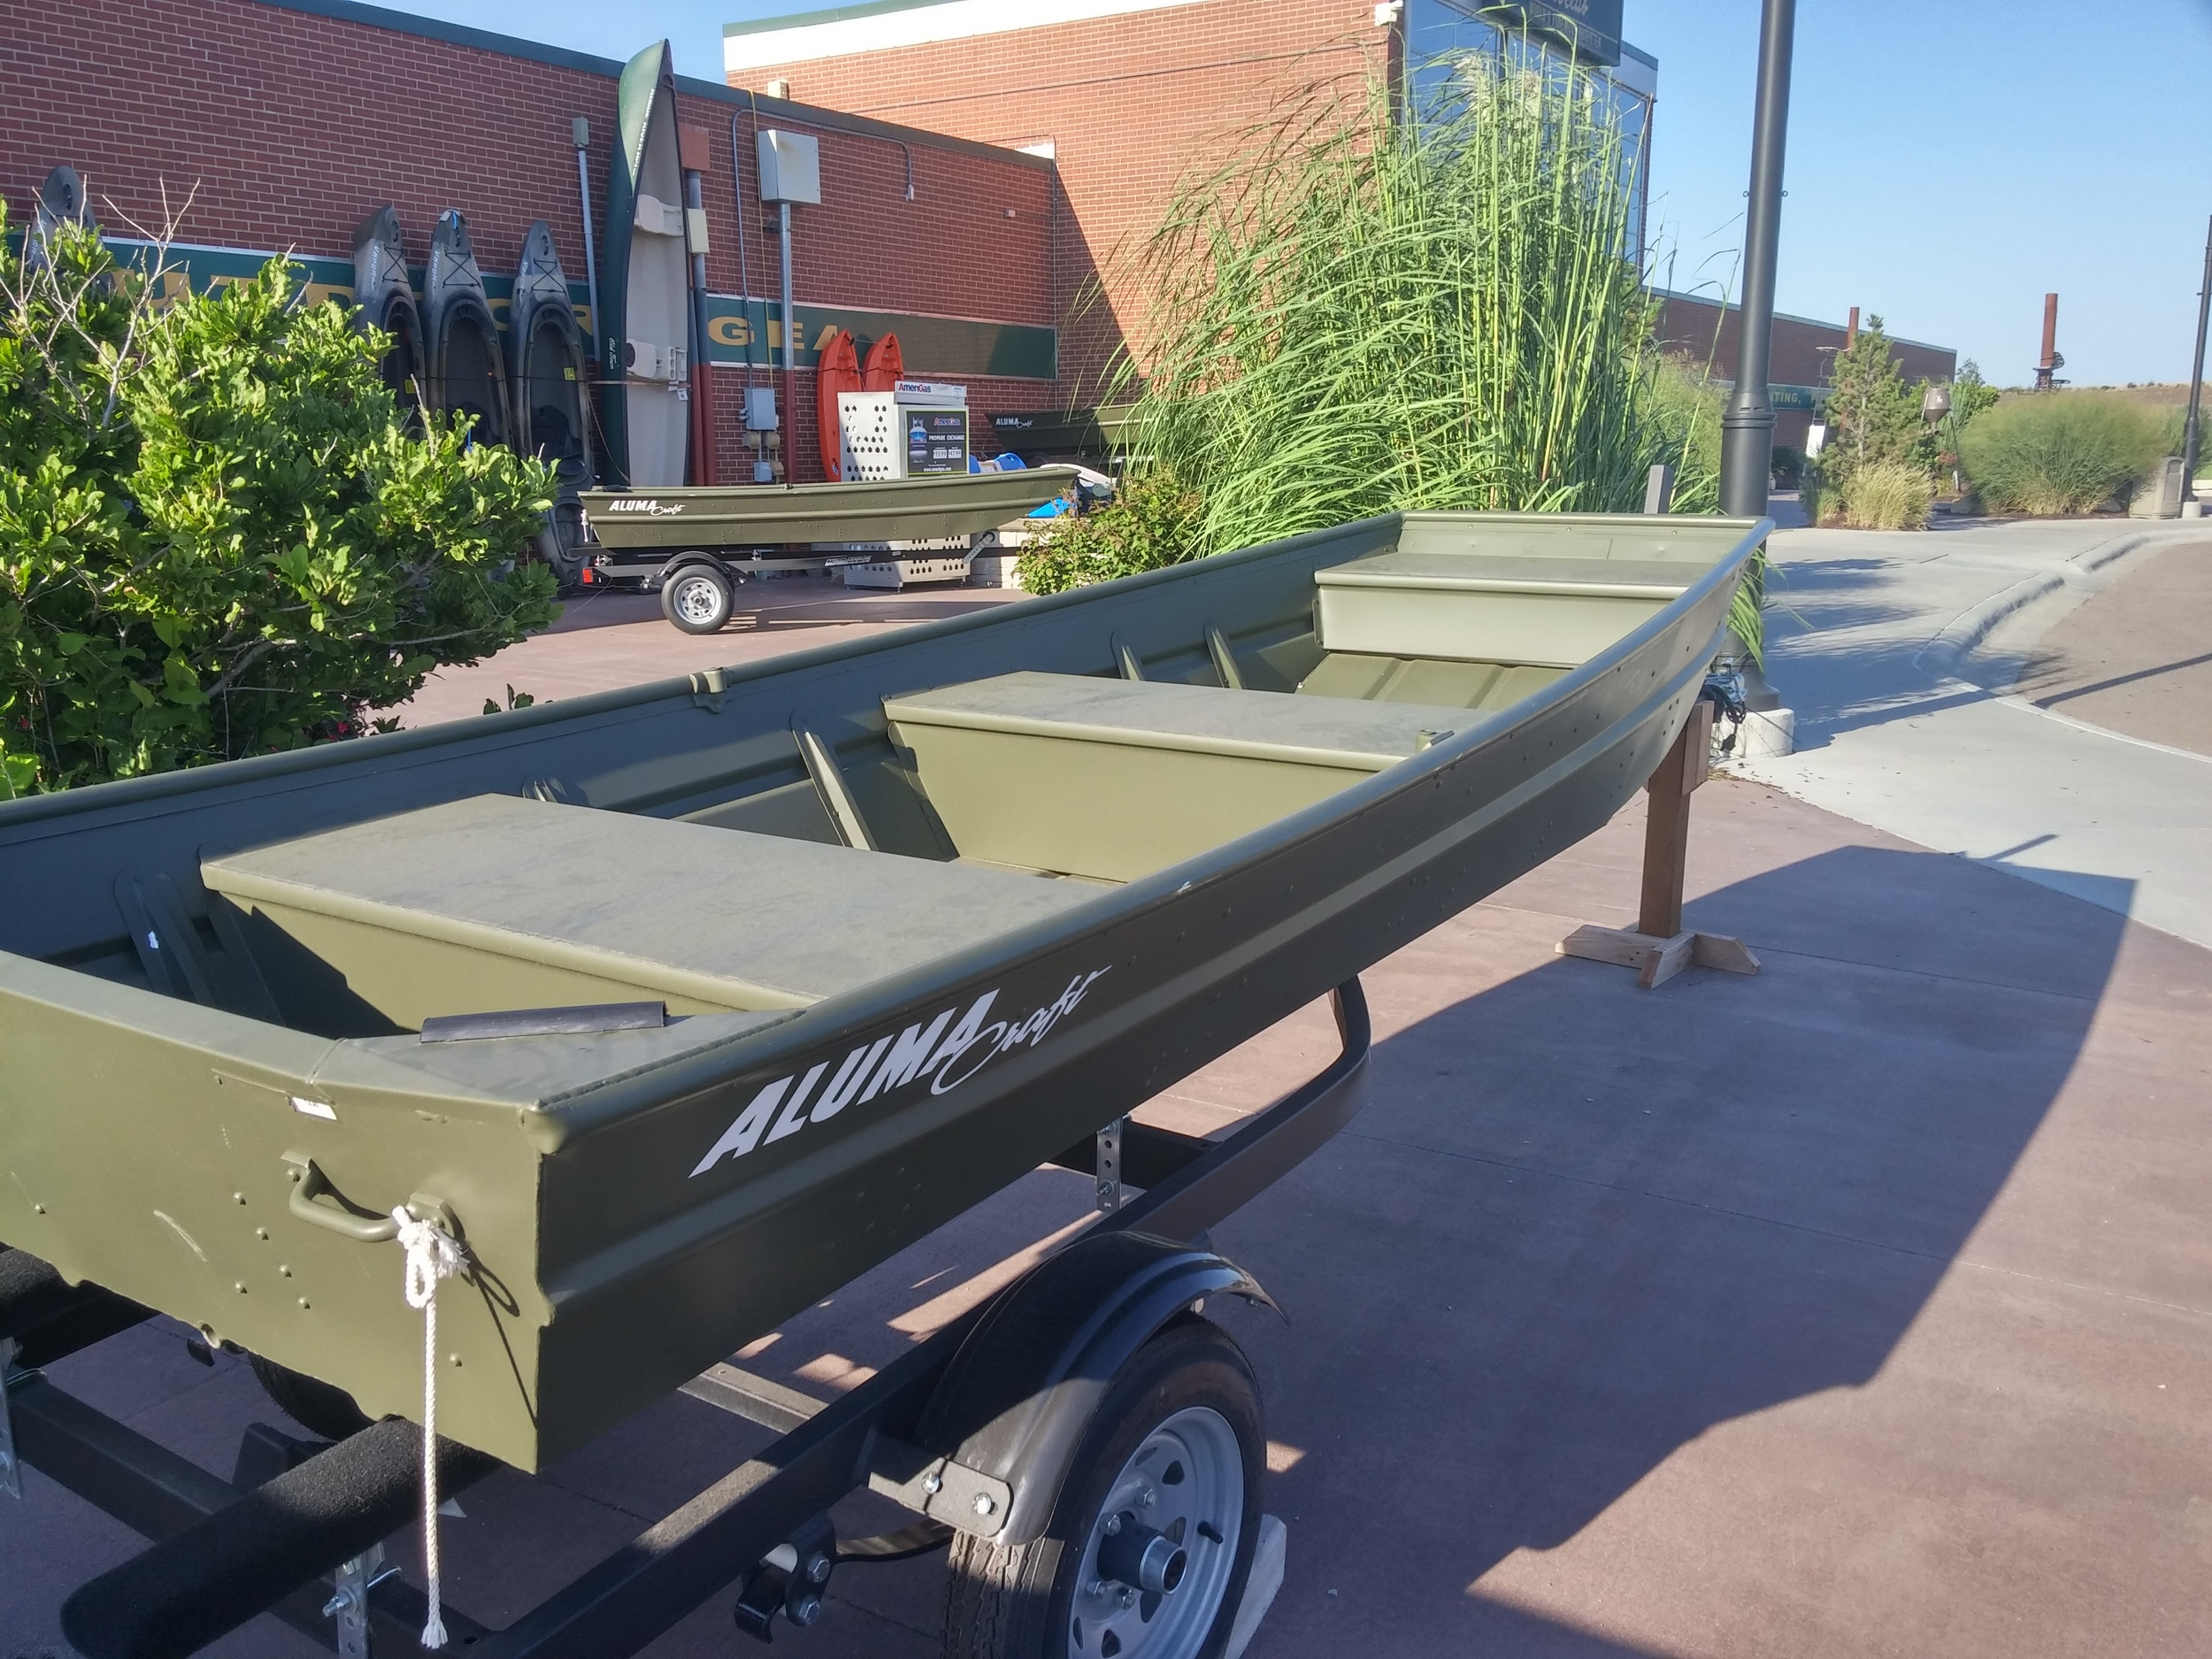 This was the subject of much discussion, as there have been various ideas floated as to having a truck bed cap, or cover, or some such thing to protect the stuff we have in there.  One idea discussed was using an upside down aluminum boat, with it's prow extending up over the cab, and the back portion joining some sidewalls built up from the truck bed. I did my best to stay out of the fray, my skepticism coming in waves that threatened to swamp the whole thing before anyone even looked at the boat's price tag.